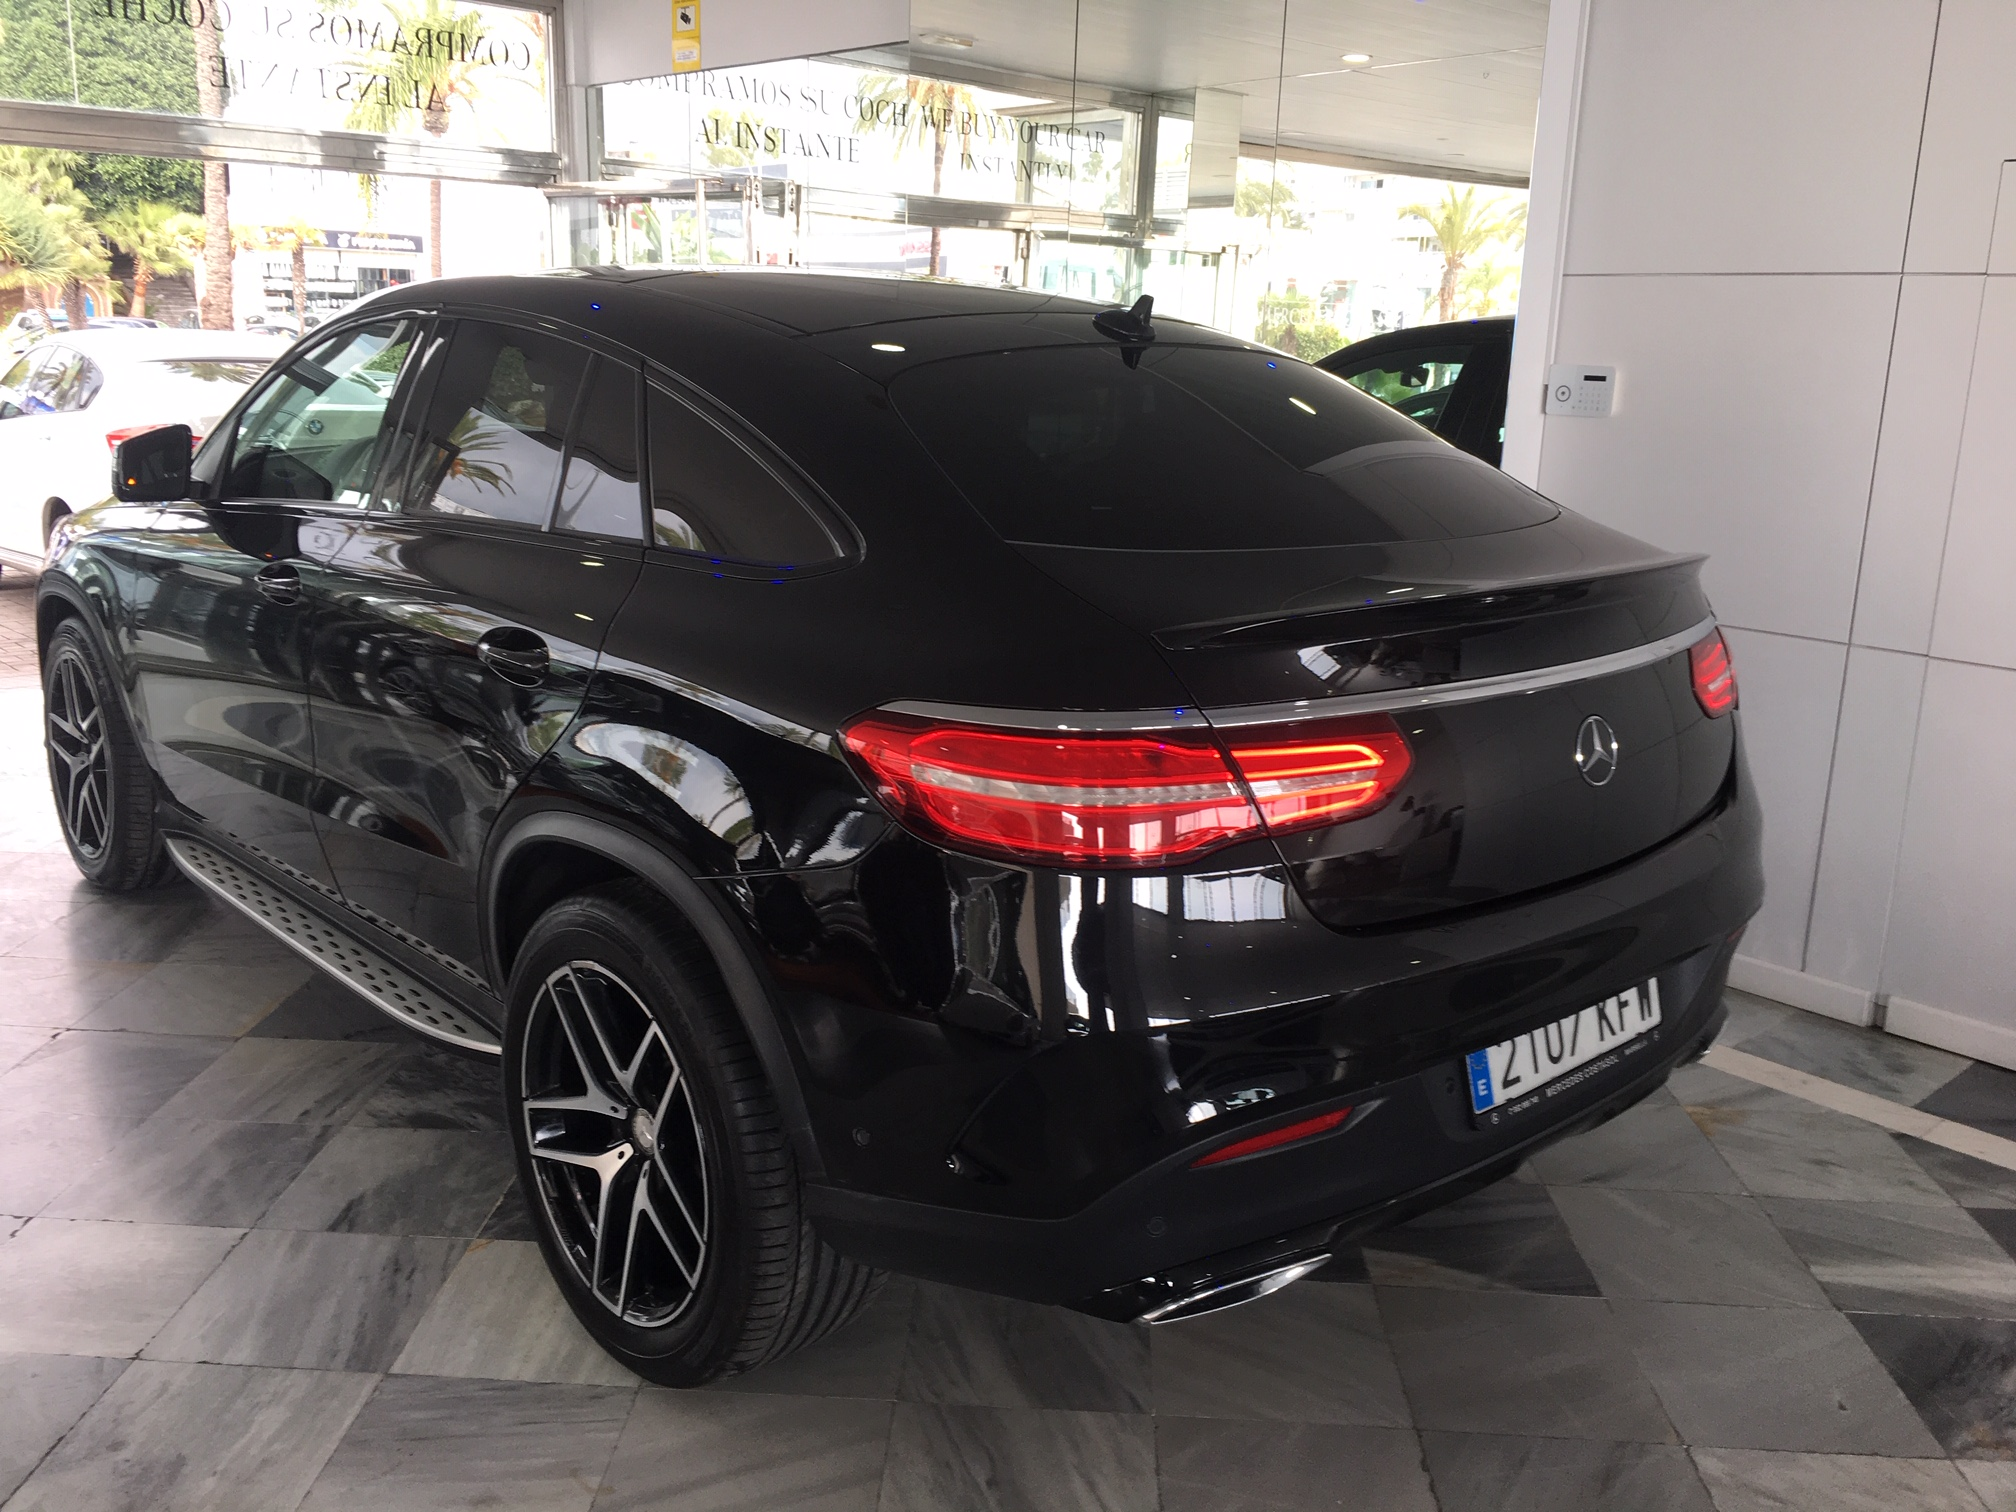 MERCEDES-BENZ GLE 350 COUPE AMG 17